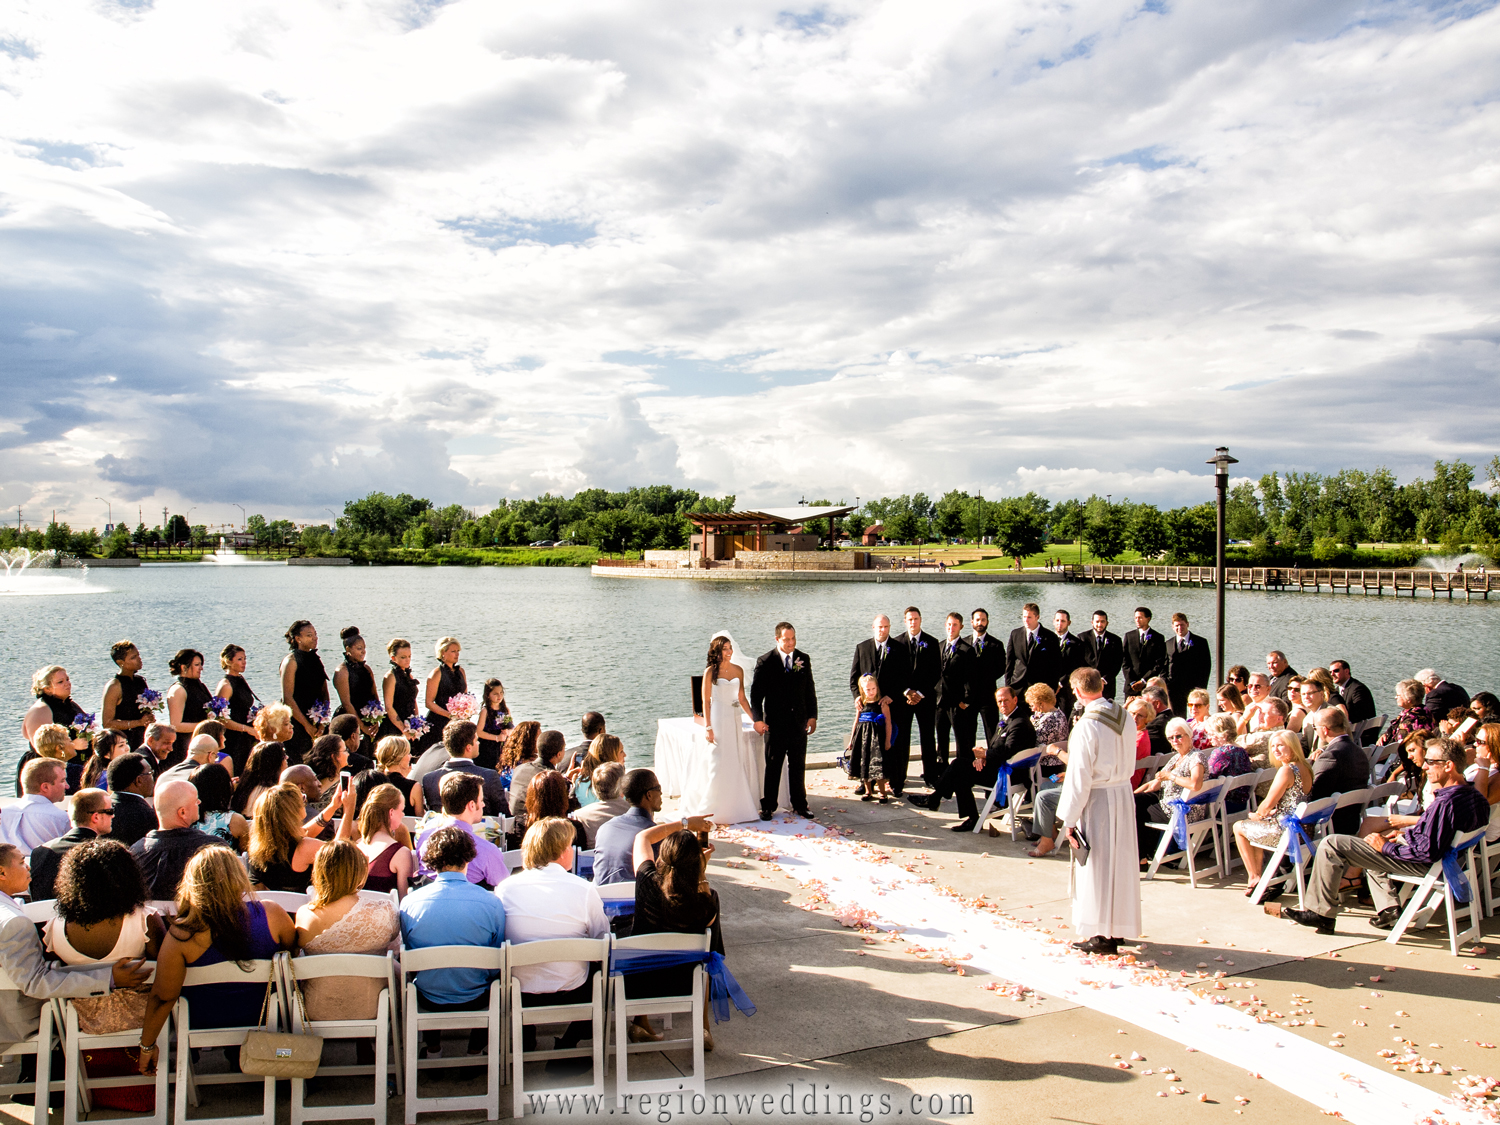 An outdoor wedding ceremony at Centennial Park in Munster, Indiana.